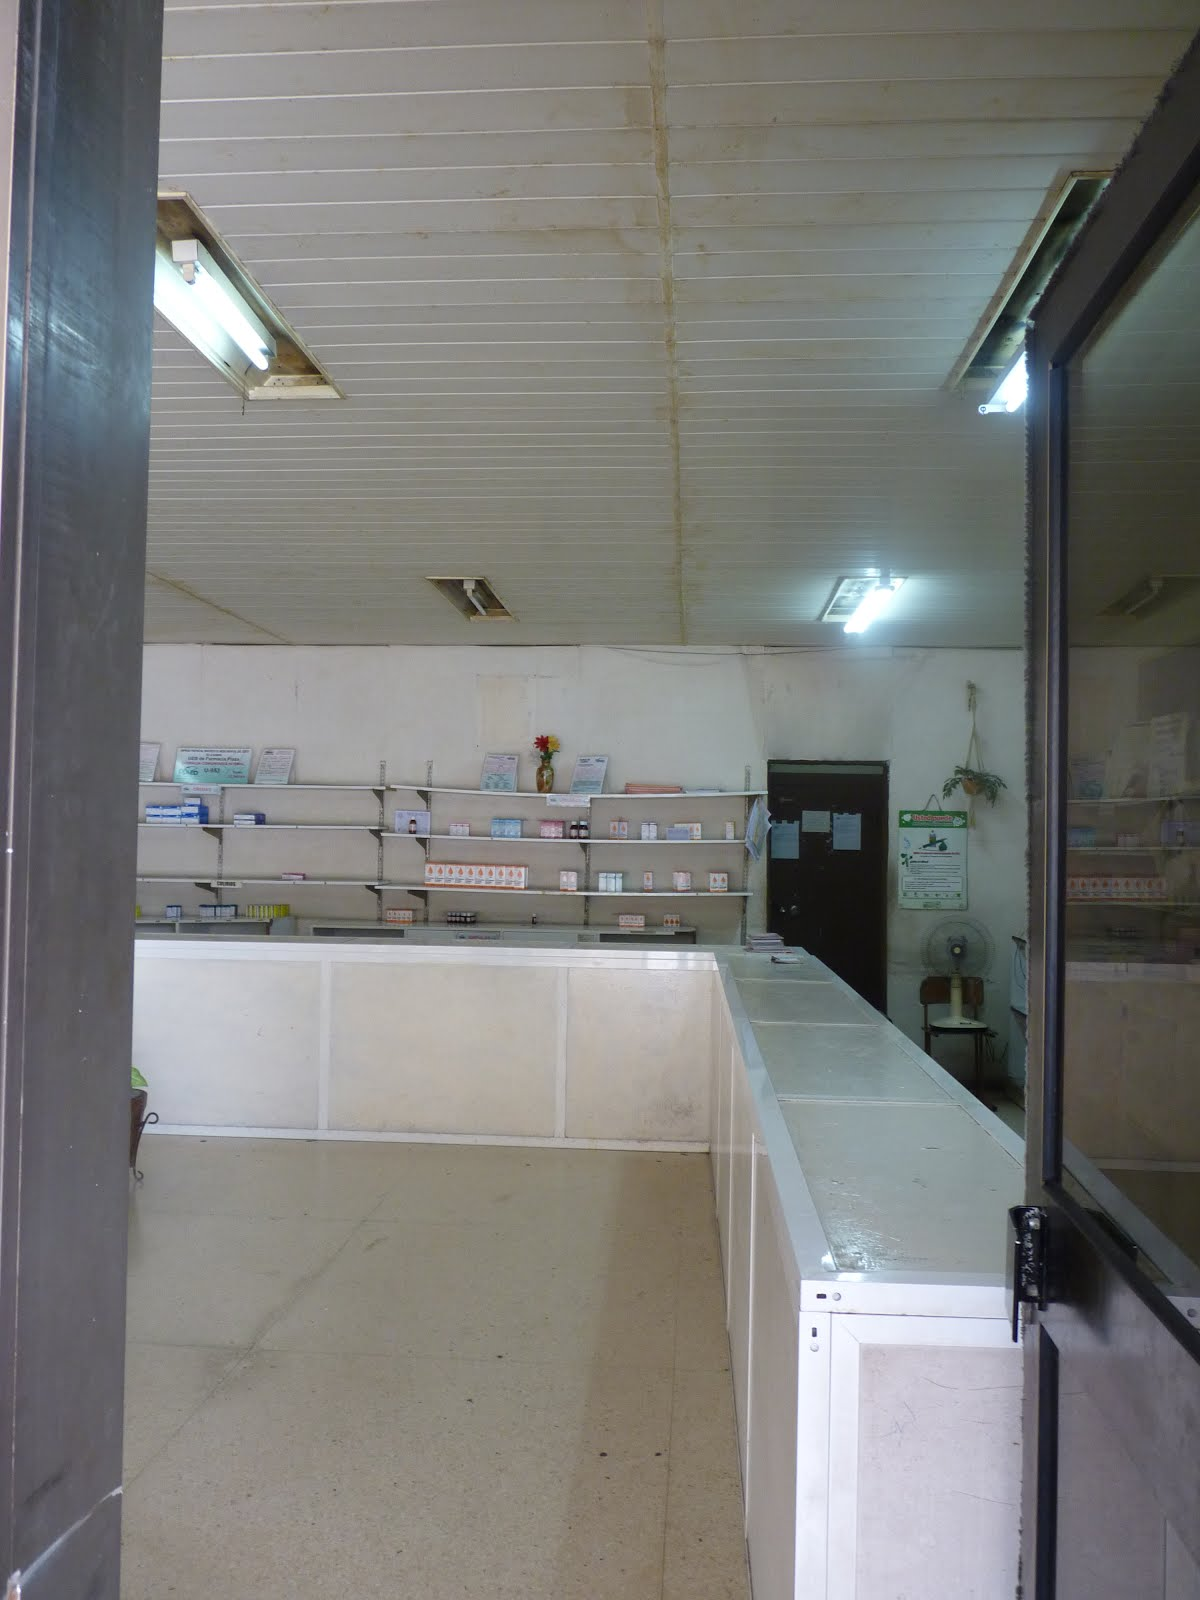 A local pharmacy in the bottom stores of the FOCSA building. The shelves are bare. Upon my taking of the picture, a nurse shooed me away.